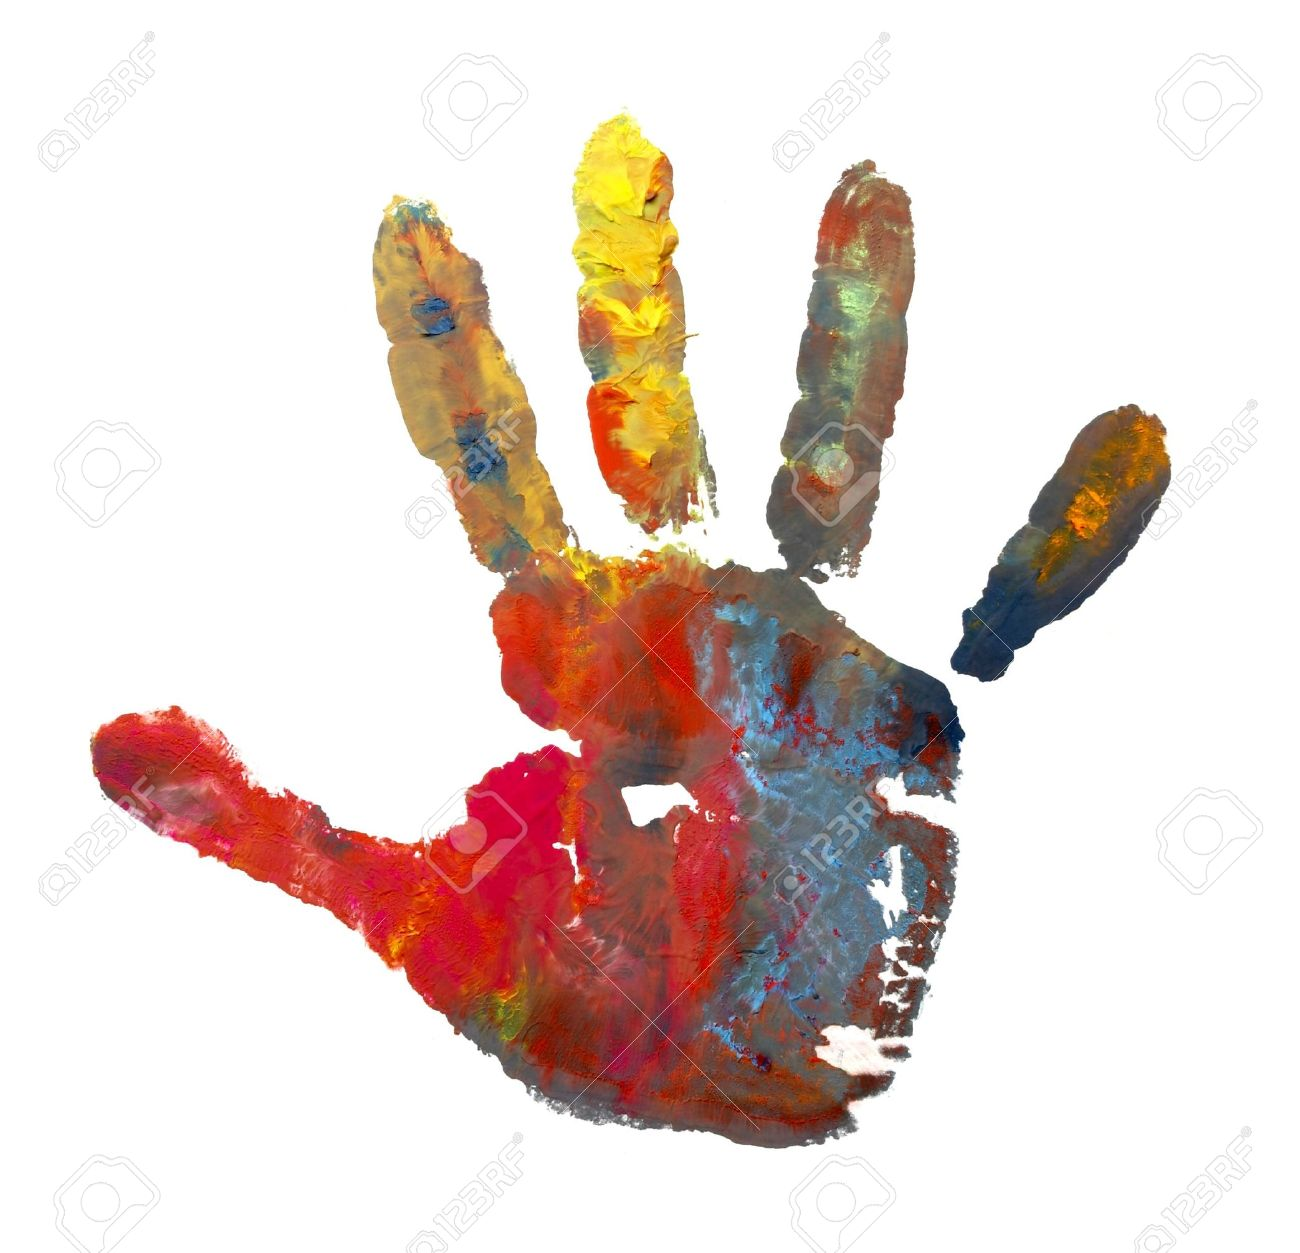 close up of child  hands painted with watercolors mark on white background Stock Photo - 4983465